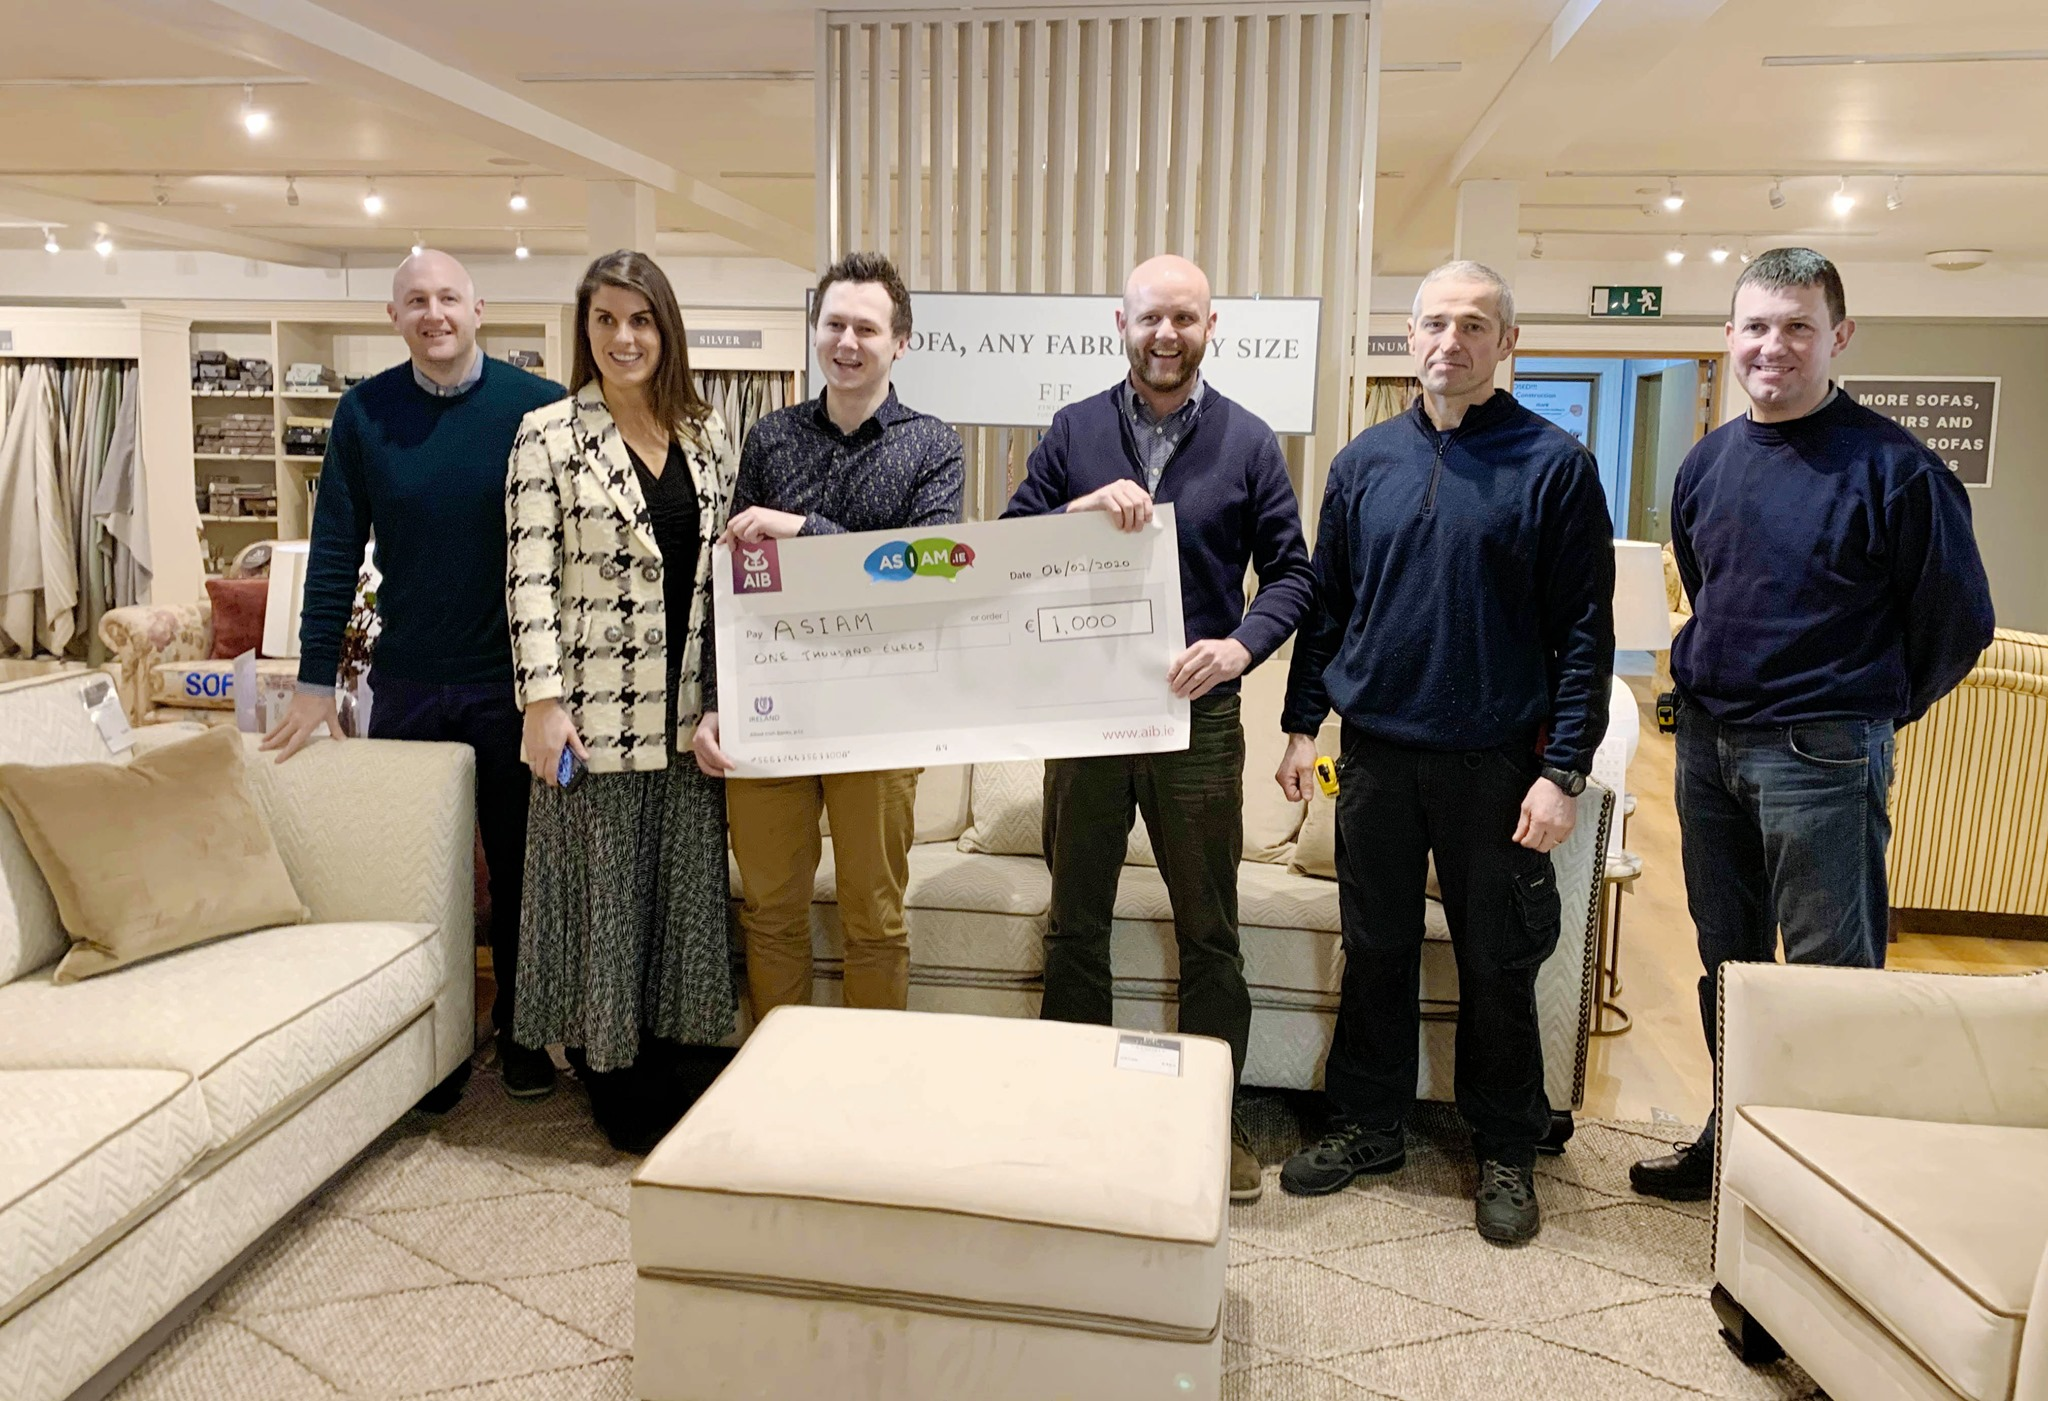 The staff and management of FINLINE FURNITURE were delighted to present Adam Harris, CEO of Autism Charity Asiam.ie with a donation of €1,000